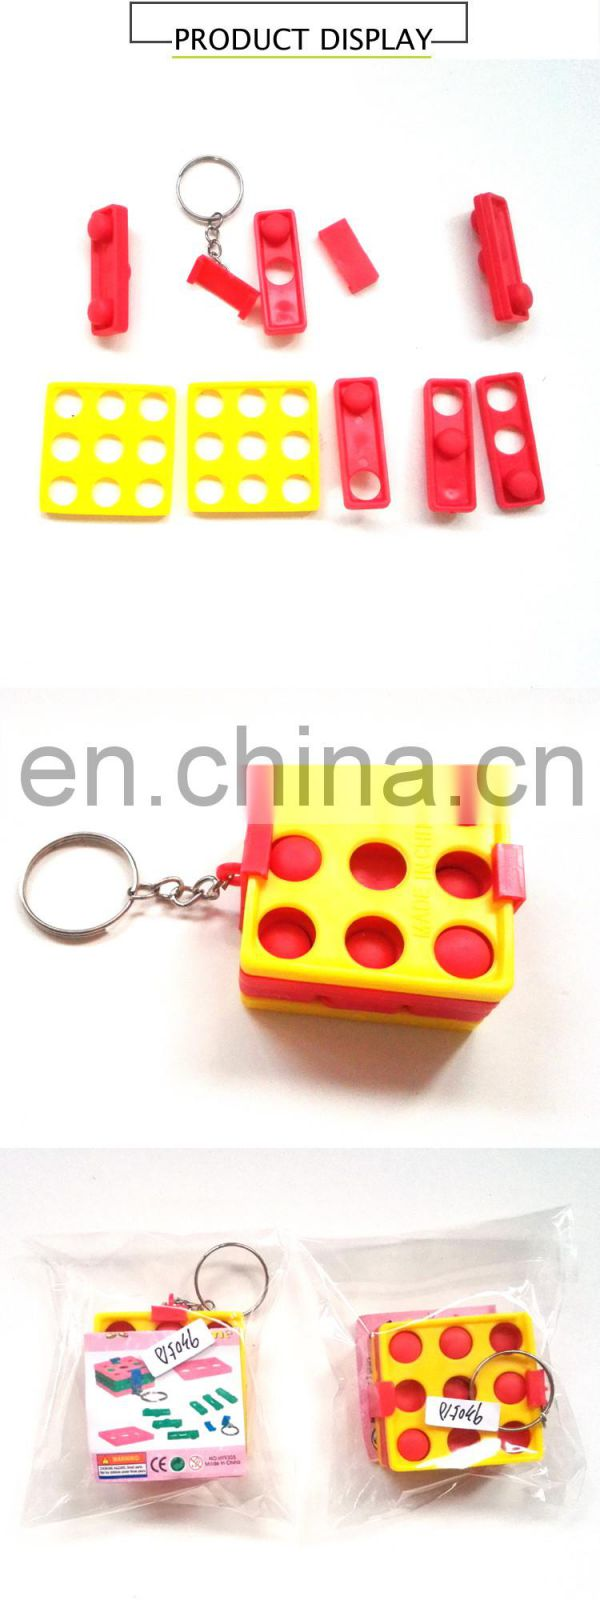 China Factory Direclty Supply China Import Problock Crazy Toys For Girls